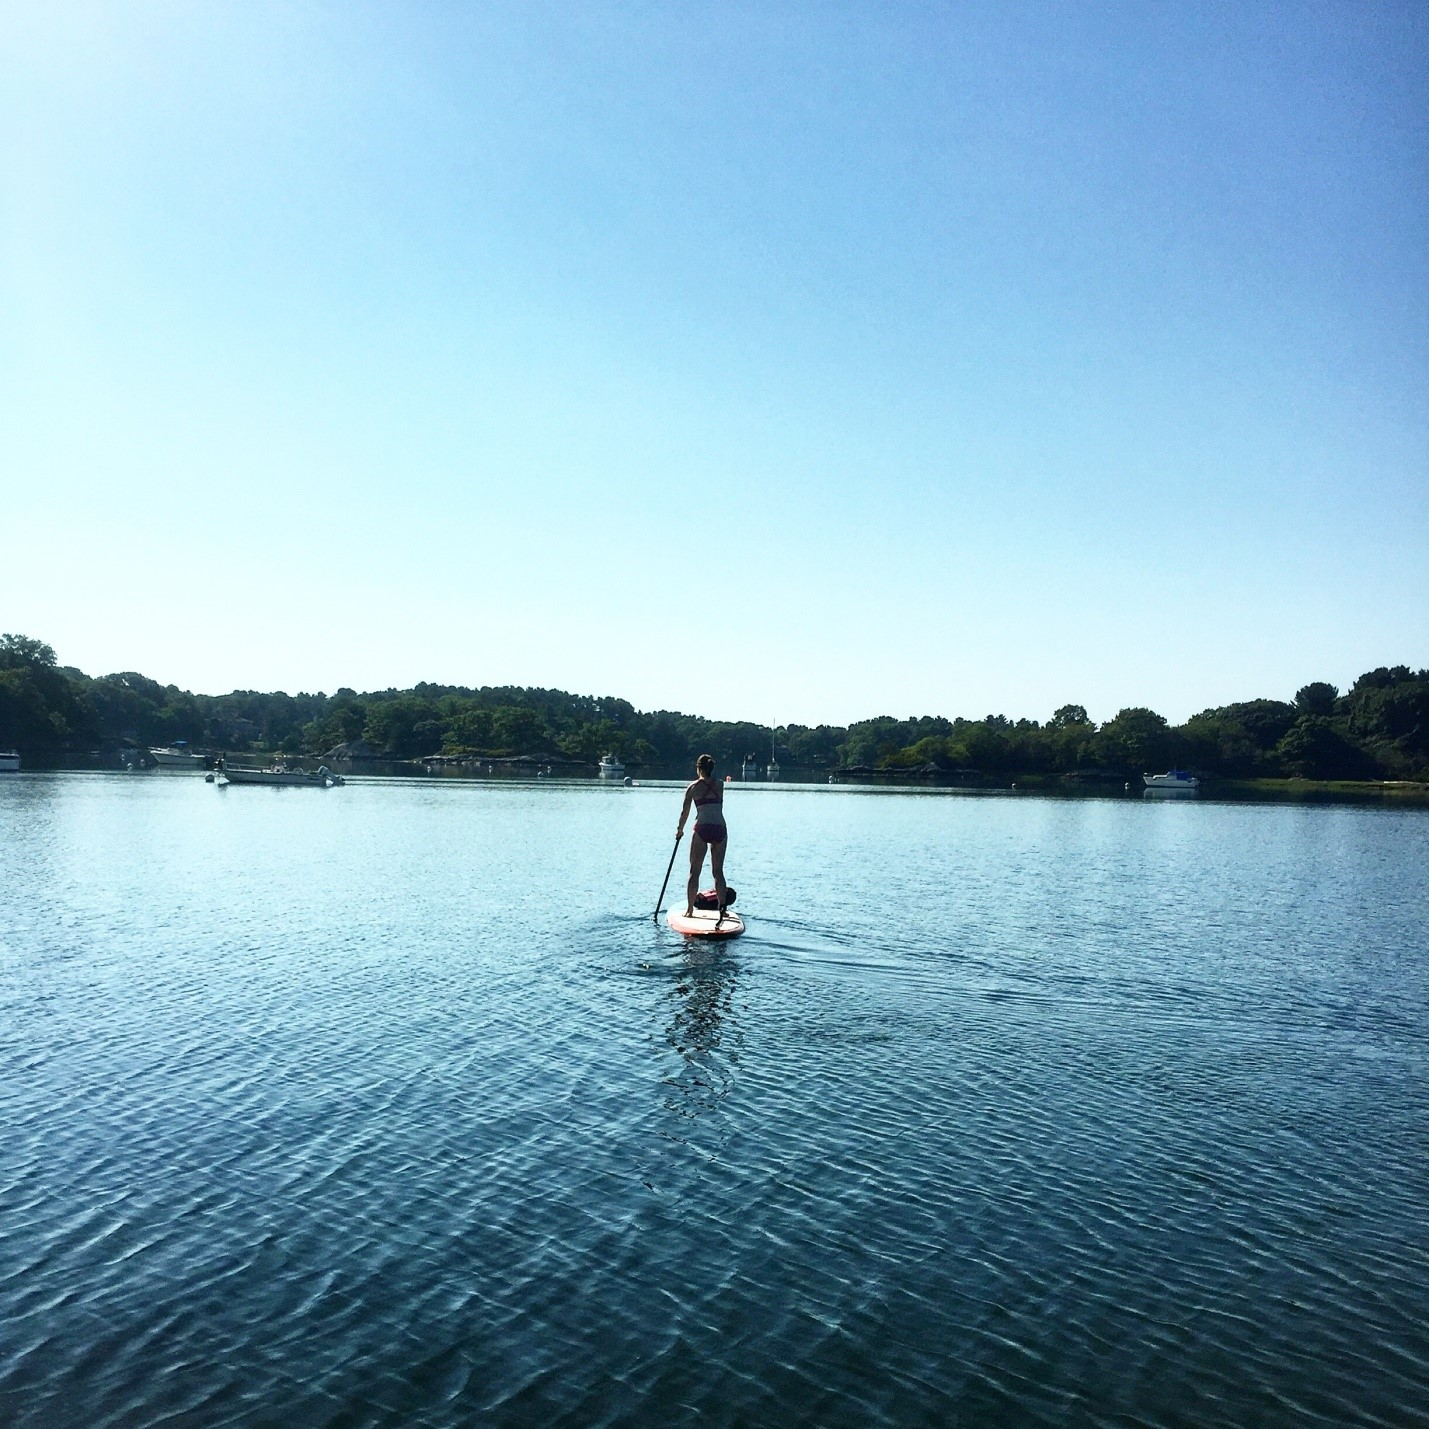 SUP Yoga, Go with the Flow: 7 Reasons to Try SUP Yoga